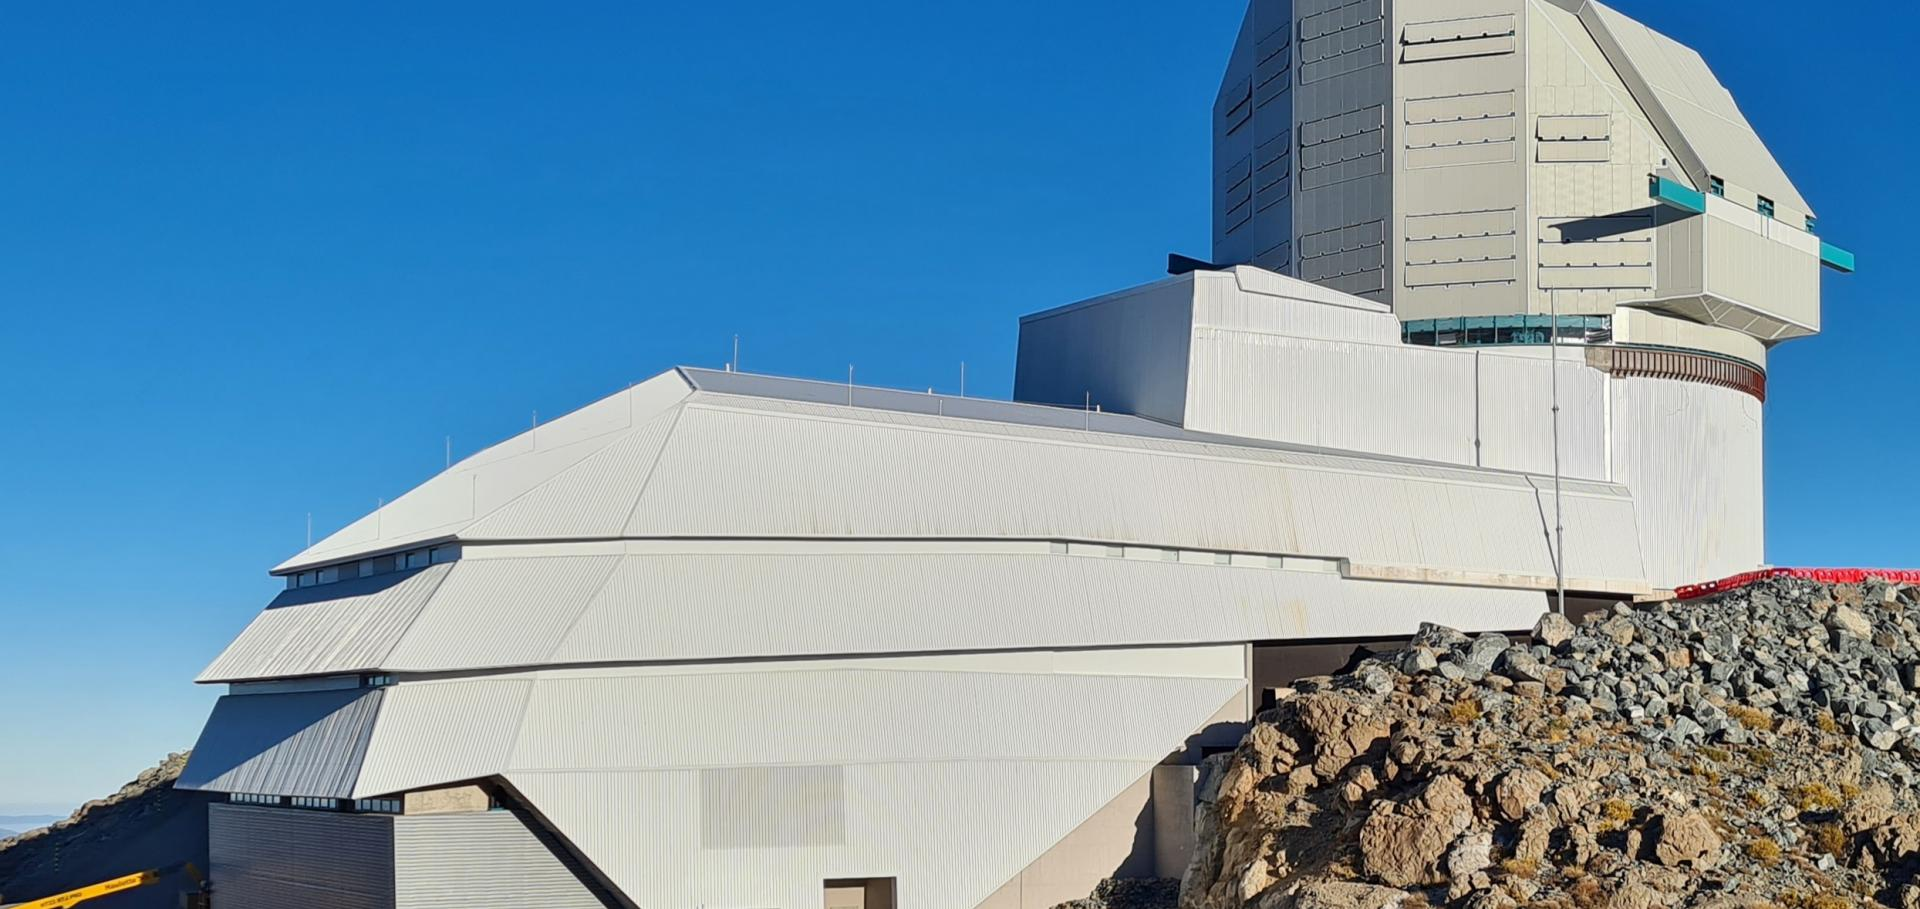 Drone photos of the Rubin Observatory summit facility (provided by Dome Surveyor, Oscar Rivera) show advancement to near 100% on dome cladding completion as well as closure of the louvers, rear door, and shutters